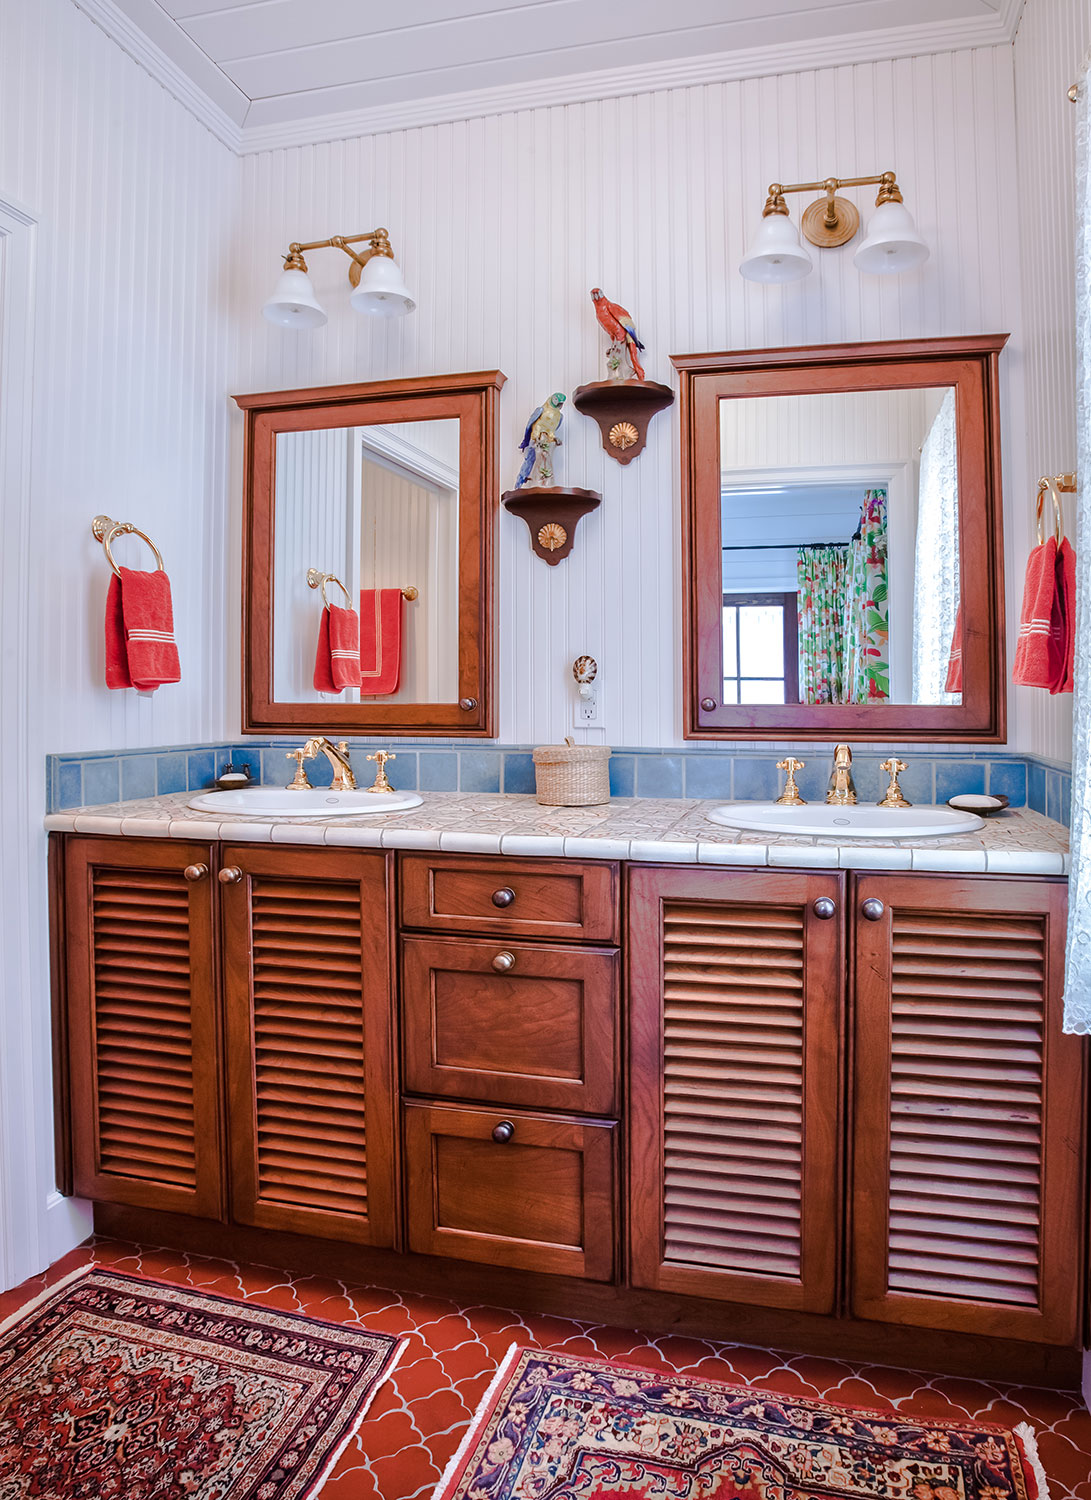 Sycamore avenue residence anna maria epoch cabinetry for Bathroom cabinets yorkshire